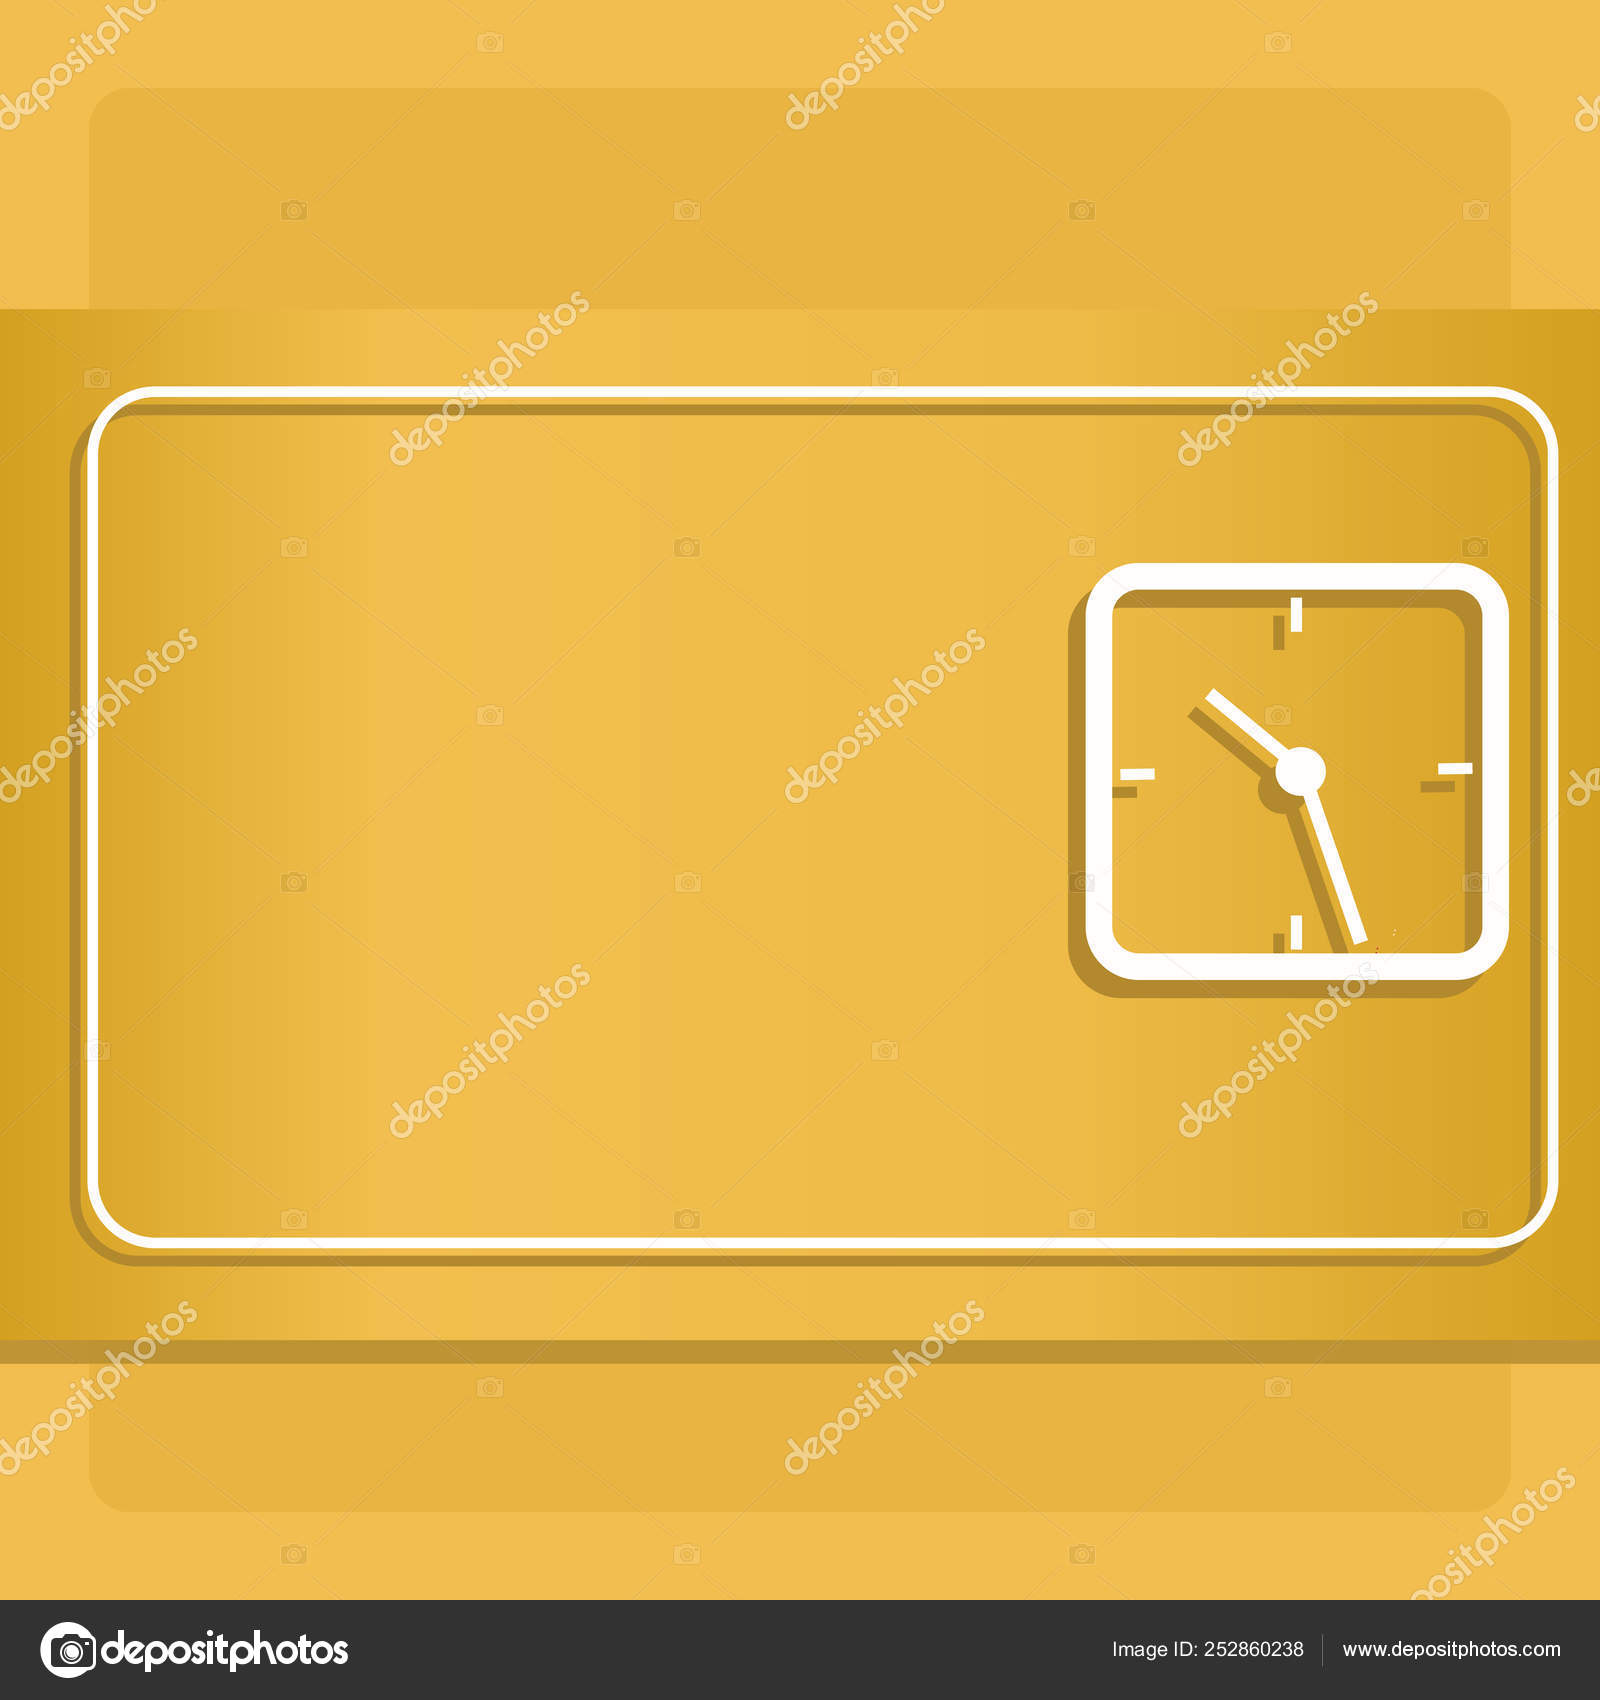 Square Outline of Analog Clock on Two Tone Pastel Backdrop